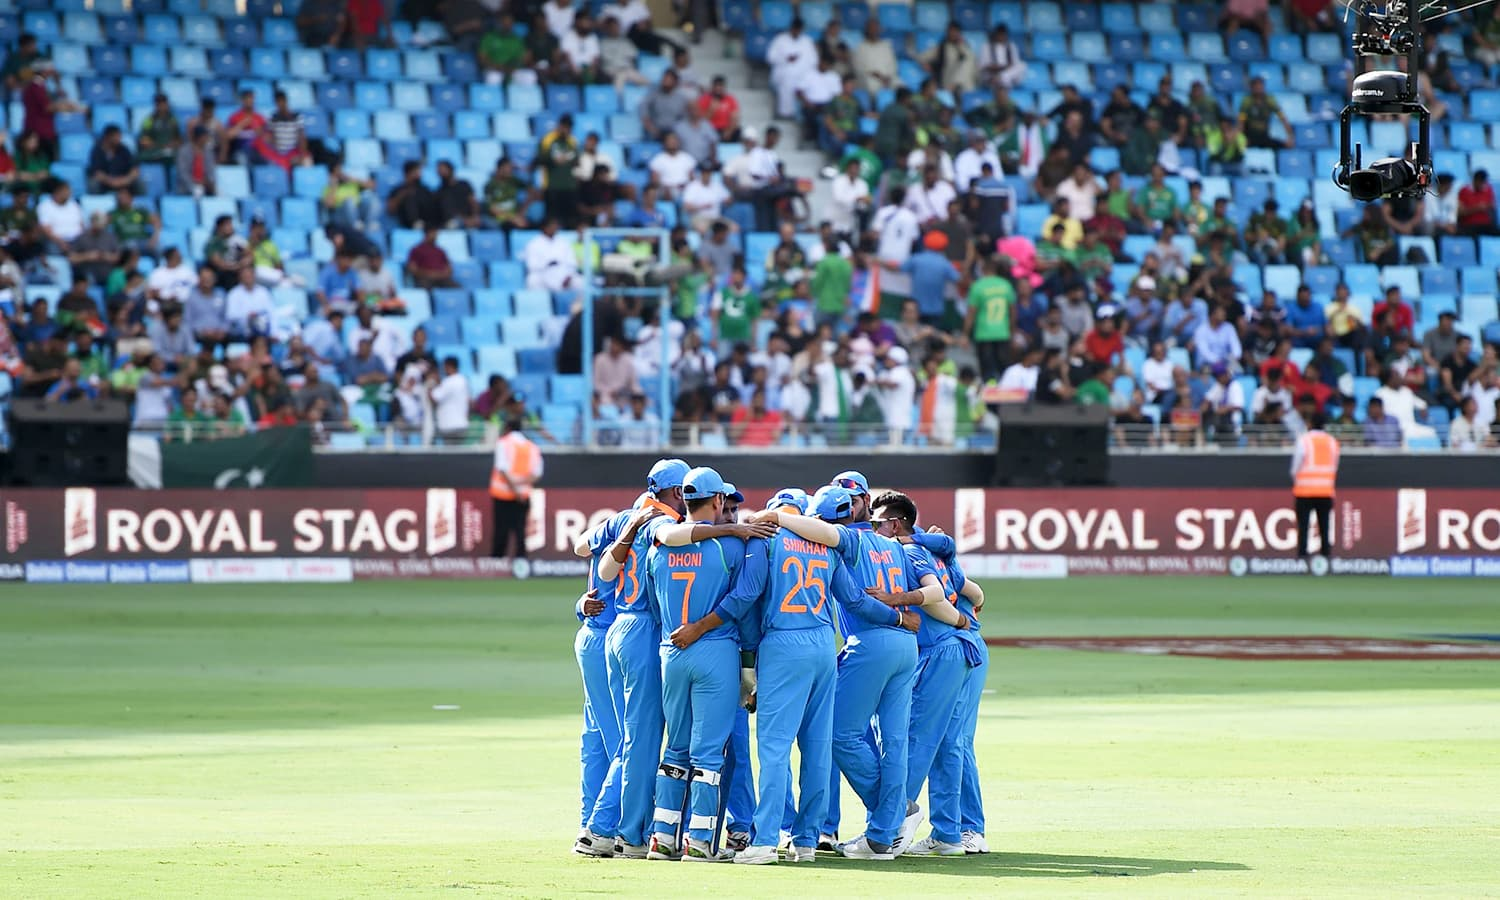 Indian team stand in a huddle before the start of the match between Pakistan and India at the Dubai International Cricket Stadium. — AFP